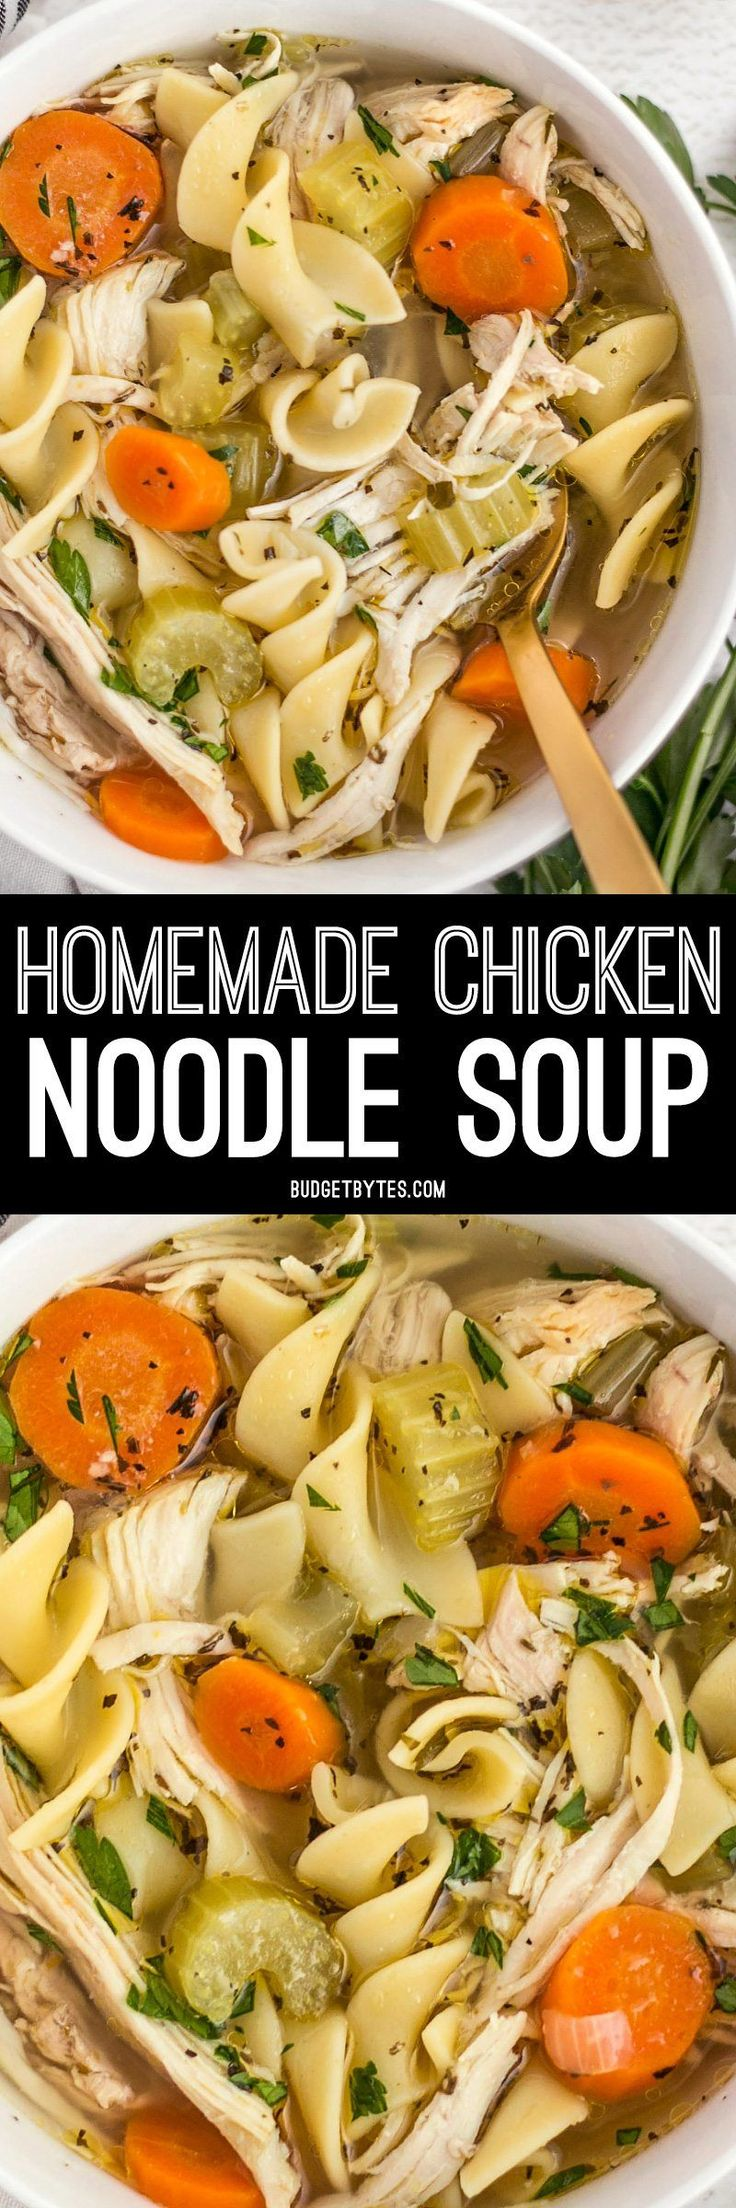 The chunky vegetables and tender egg noodles in this savory Homemade Chicken Noodle Soup will fill your belly and soothe your soul. BudgetBytes.com